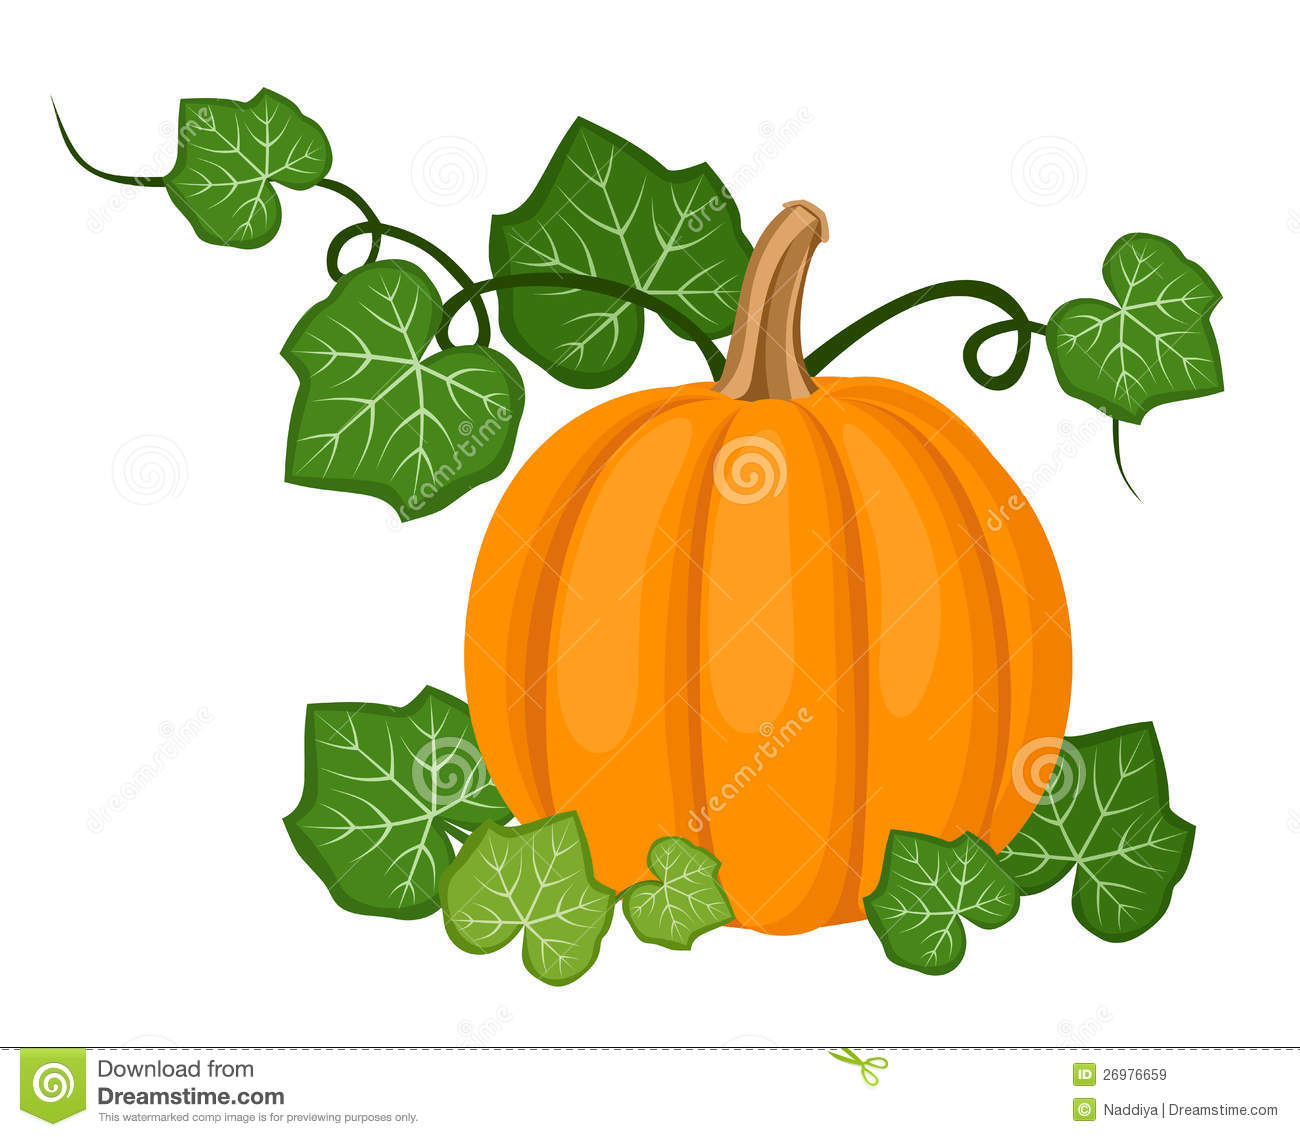 Vector Illustration Of Orange Pumpkin With Leaves Isolated On A White